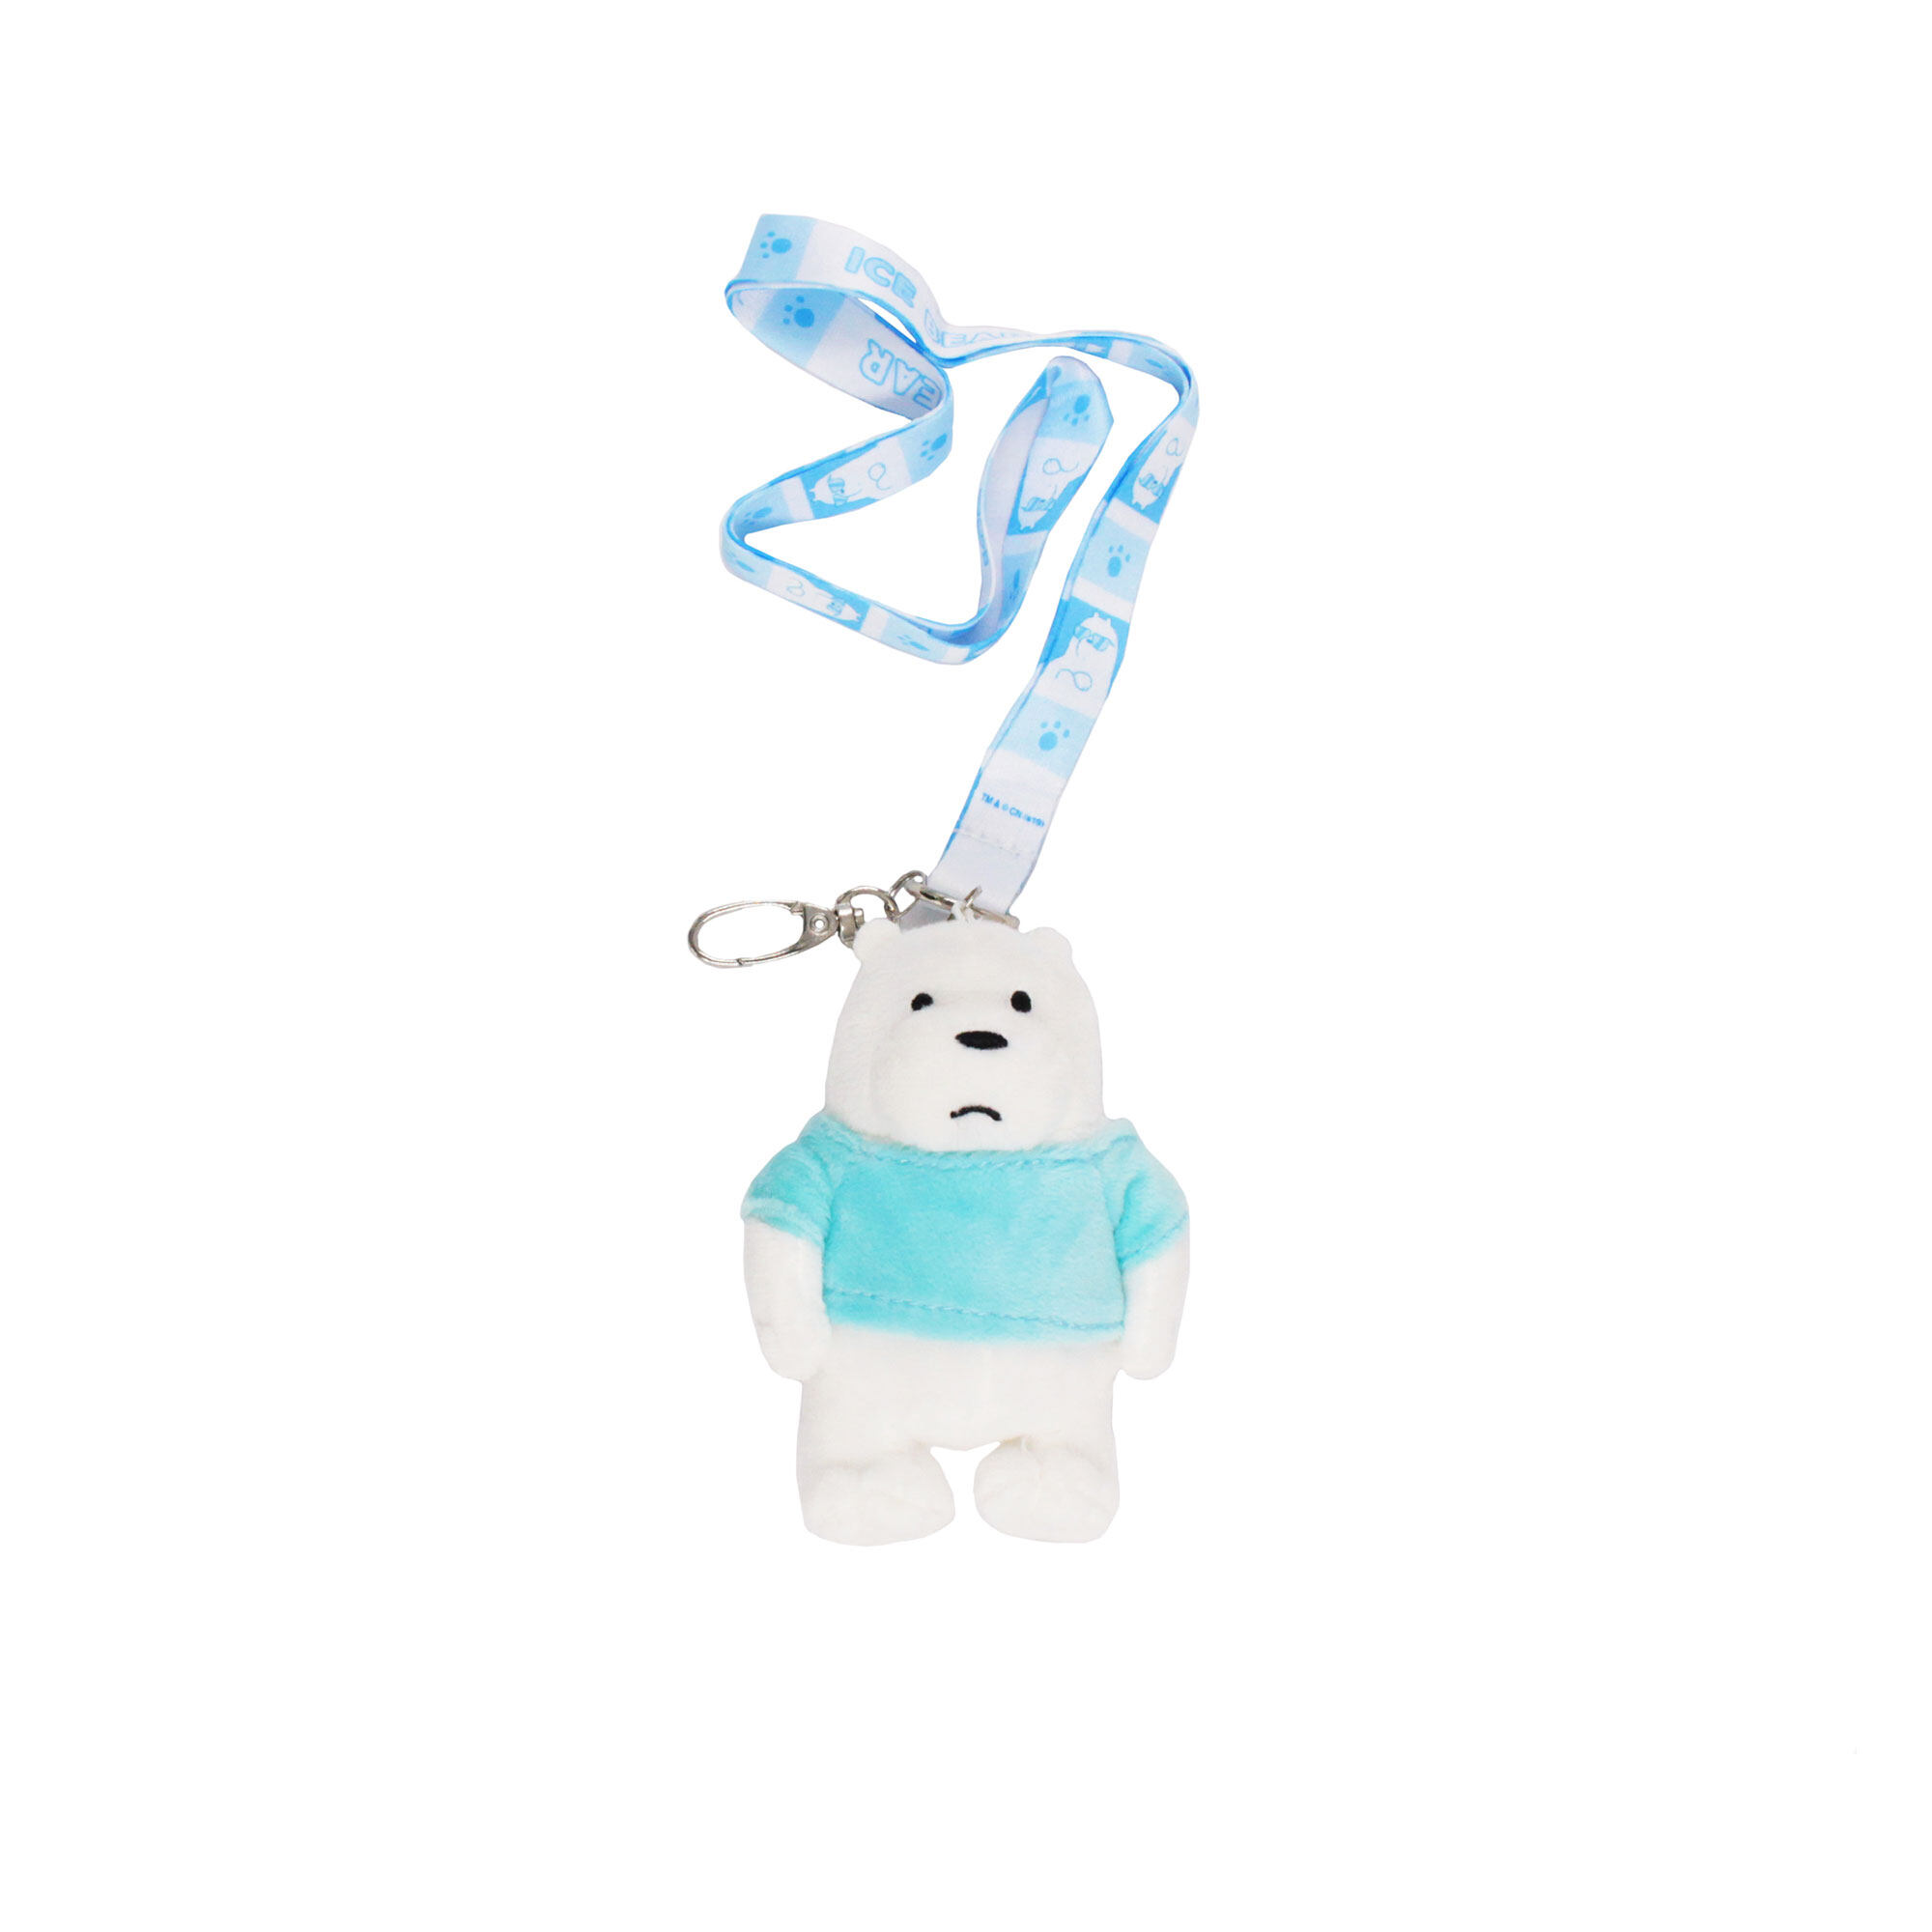 We Bare Bears Ice Bear Lanyard - White & Light Blue